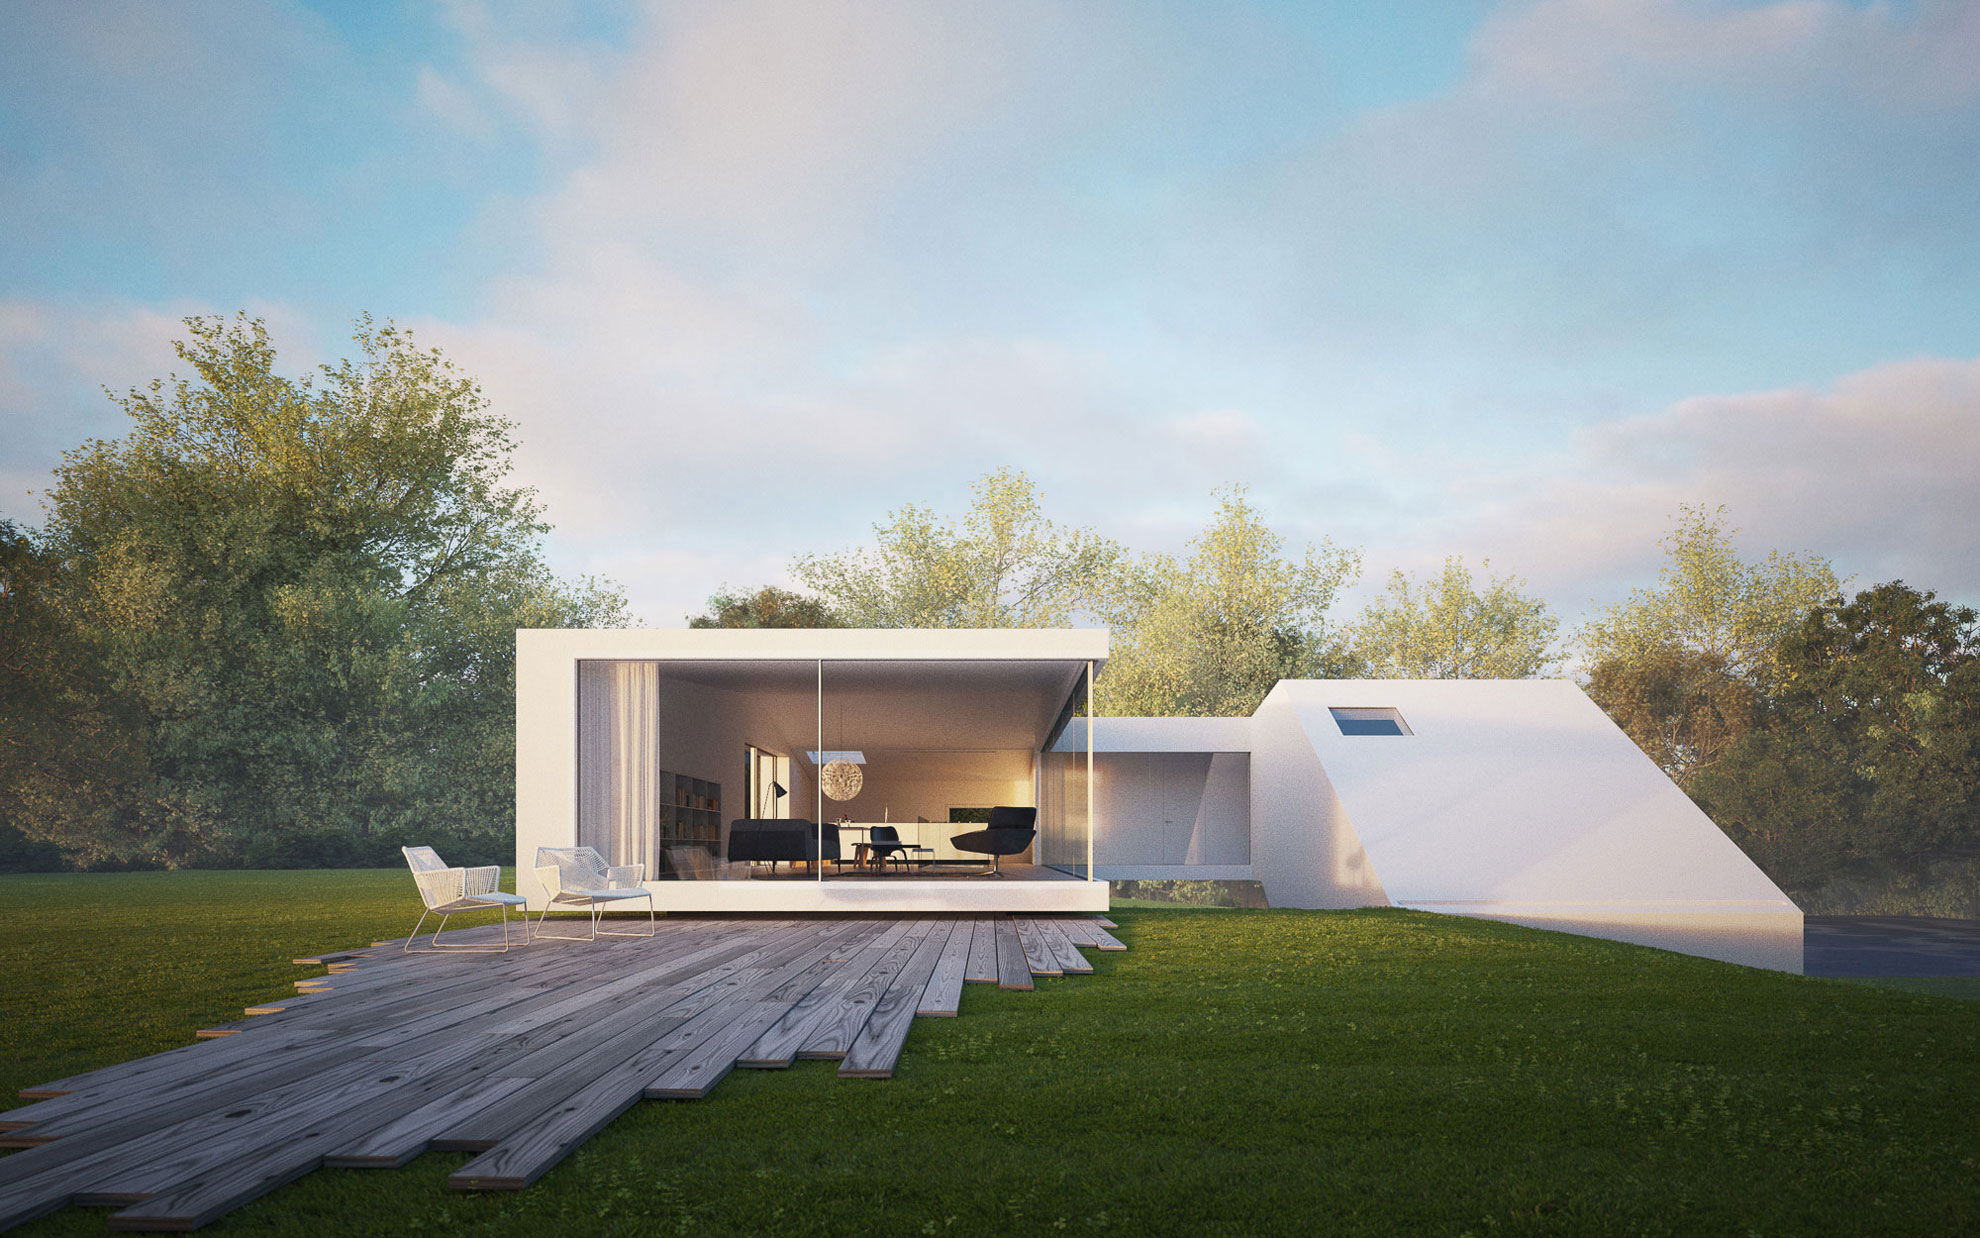 Cubic house hafner by hornung and jacobi architecture 5 for My minimalist home